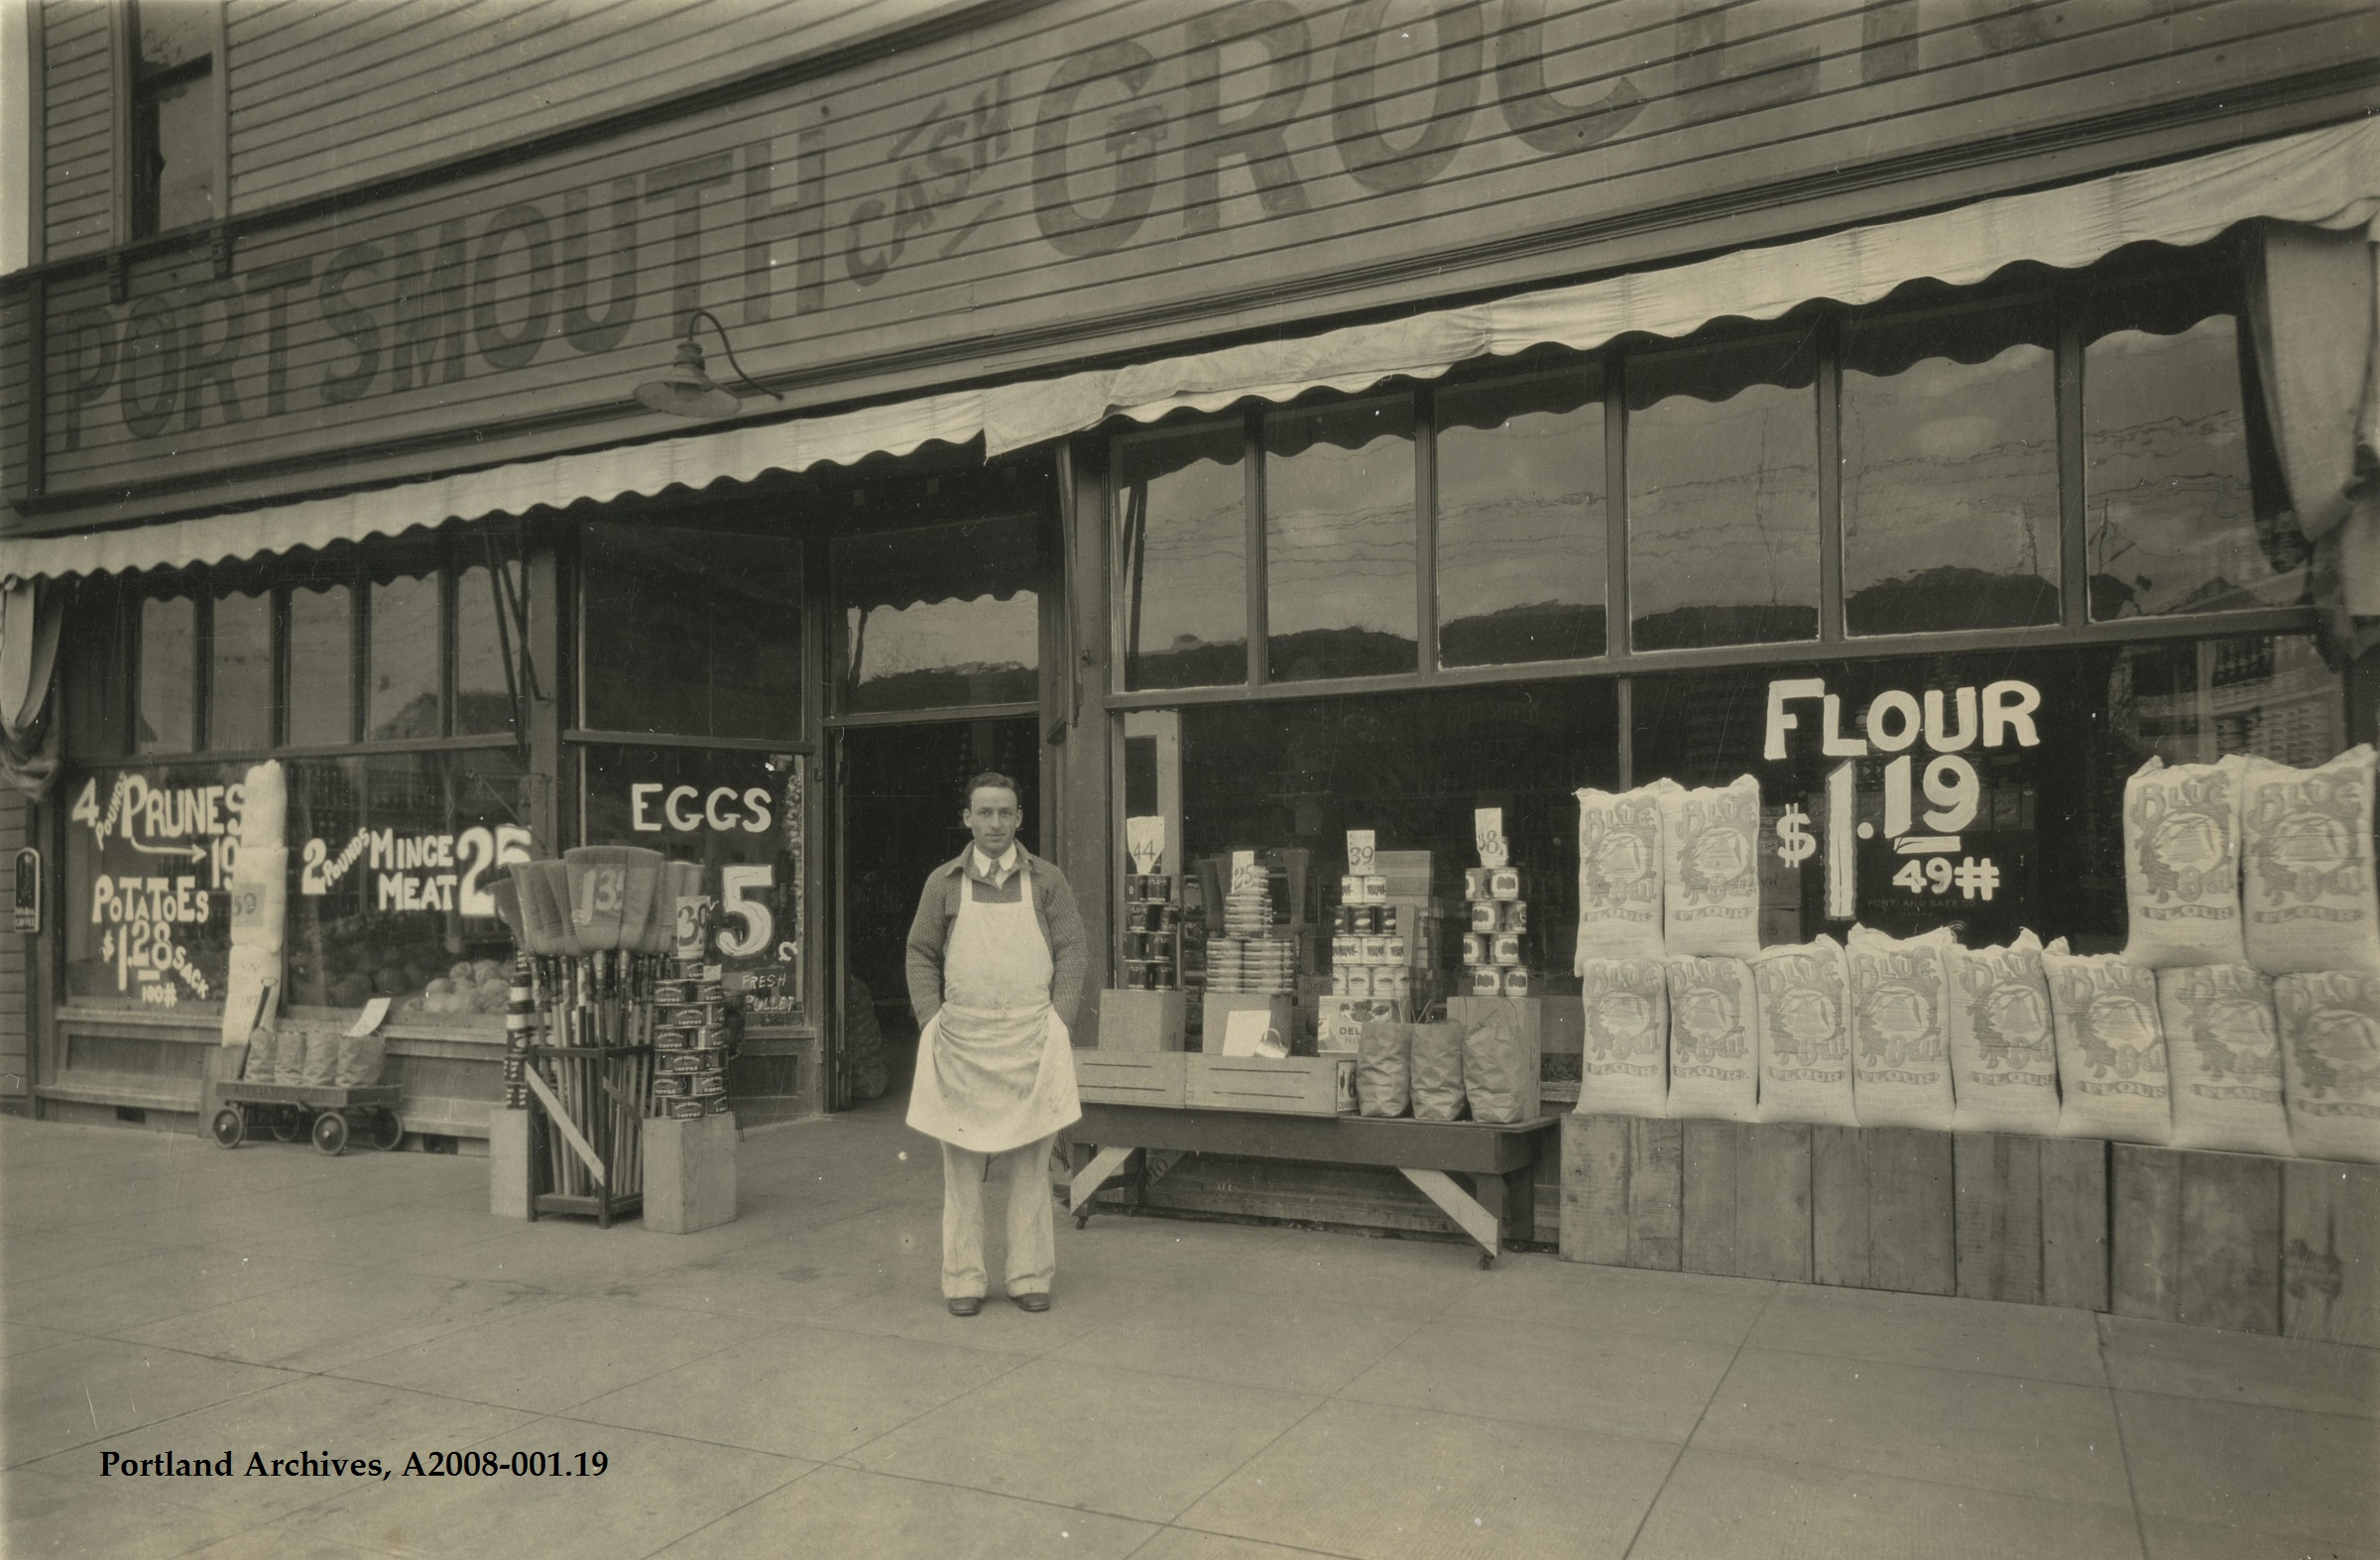 1932_exterior-view-of-portsmouth-cash-grocery-at-5303-n-lombard_a2008-001-19